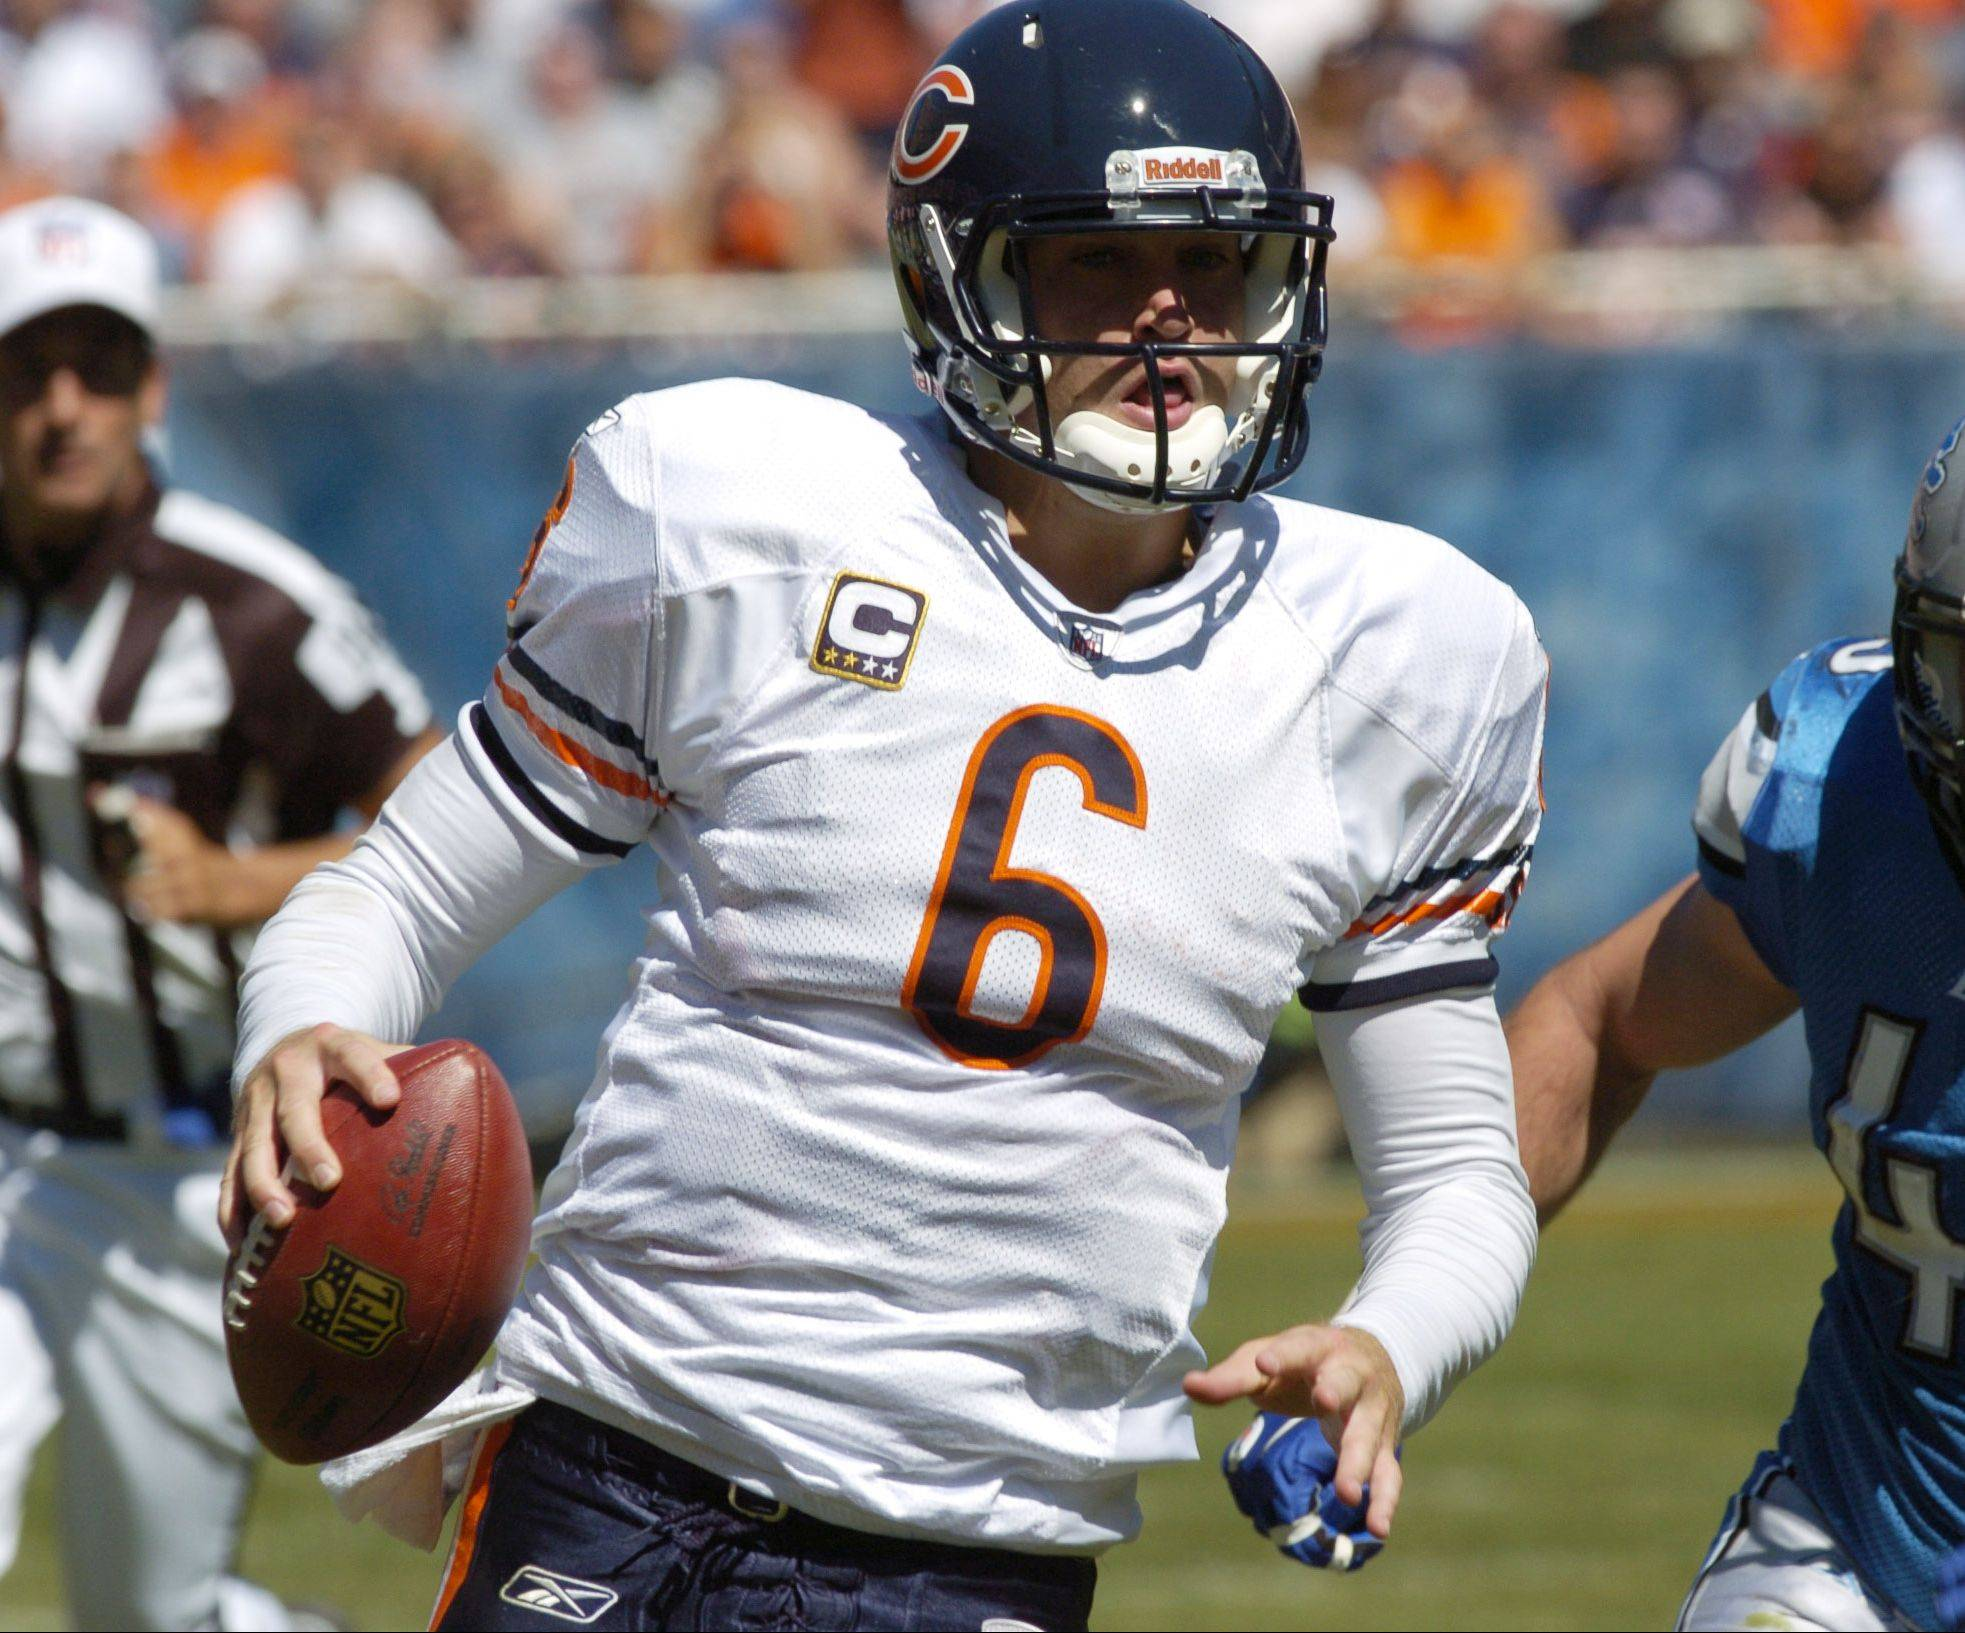 New Bears coach Marc Trestman says he'll at times give QB Jay Cutler the freedom to audible.